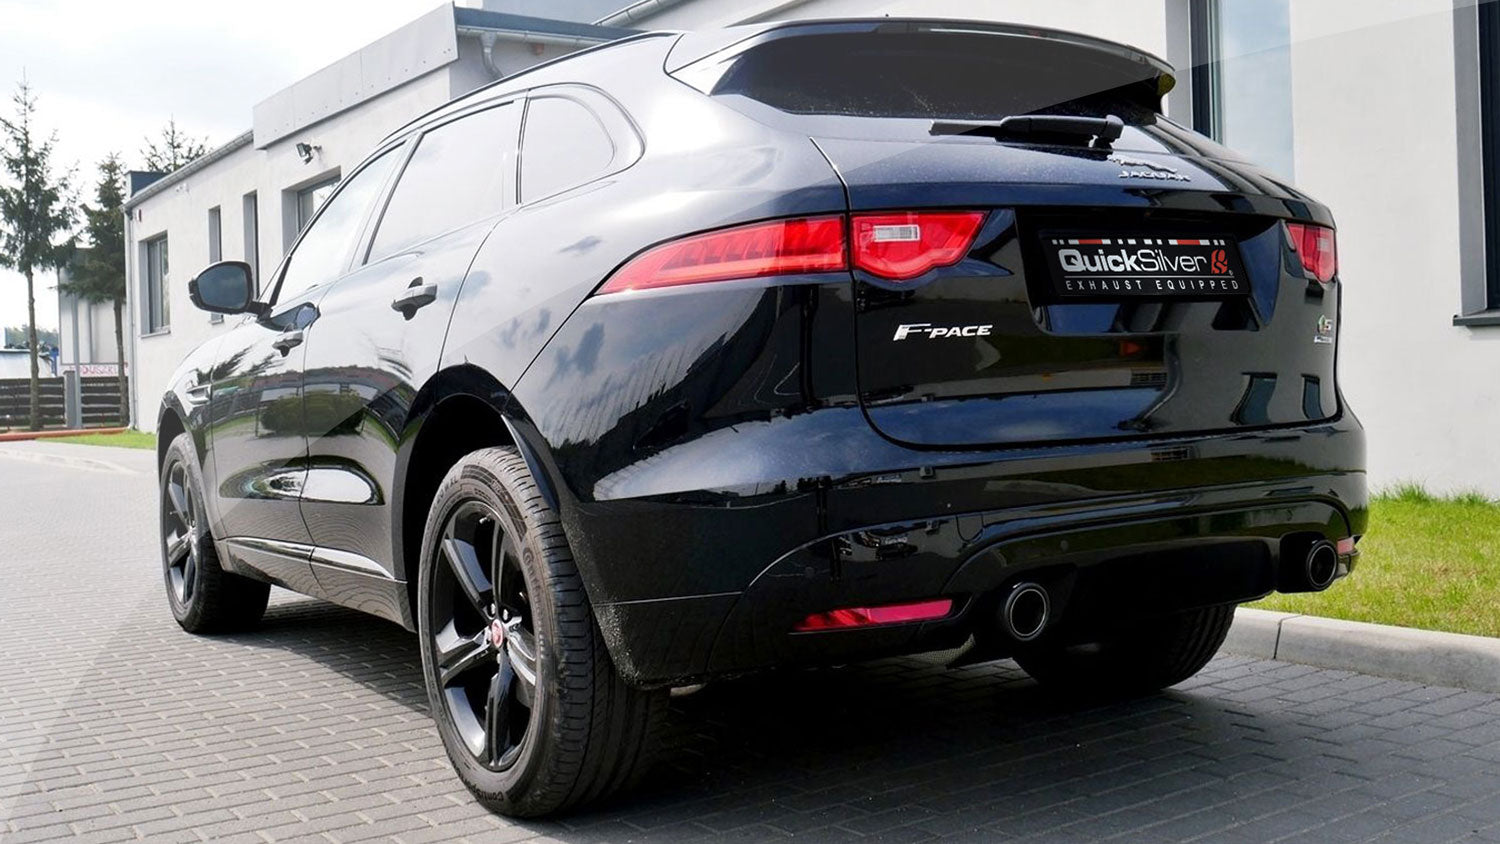 Jaguar F Pace a Best Seller